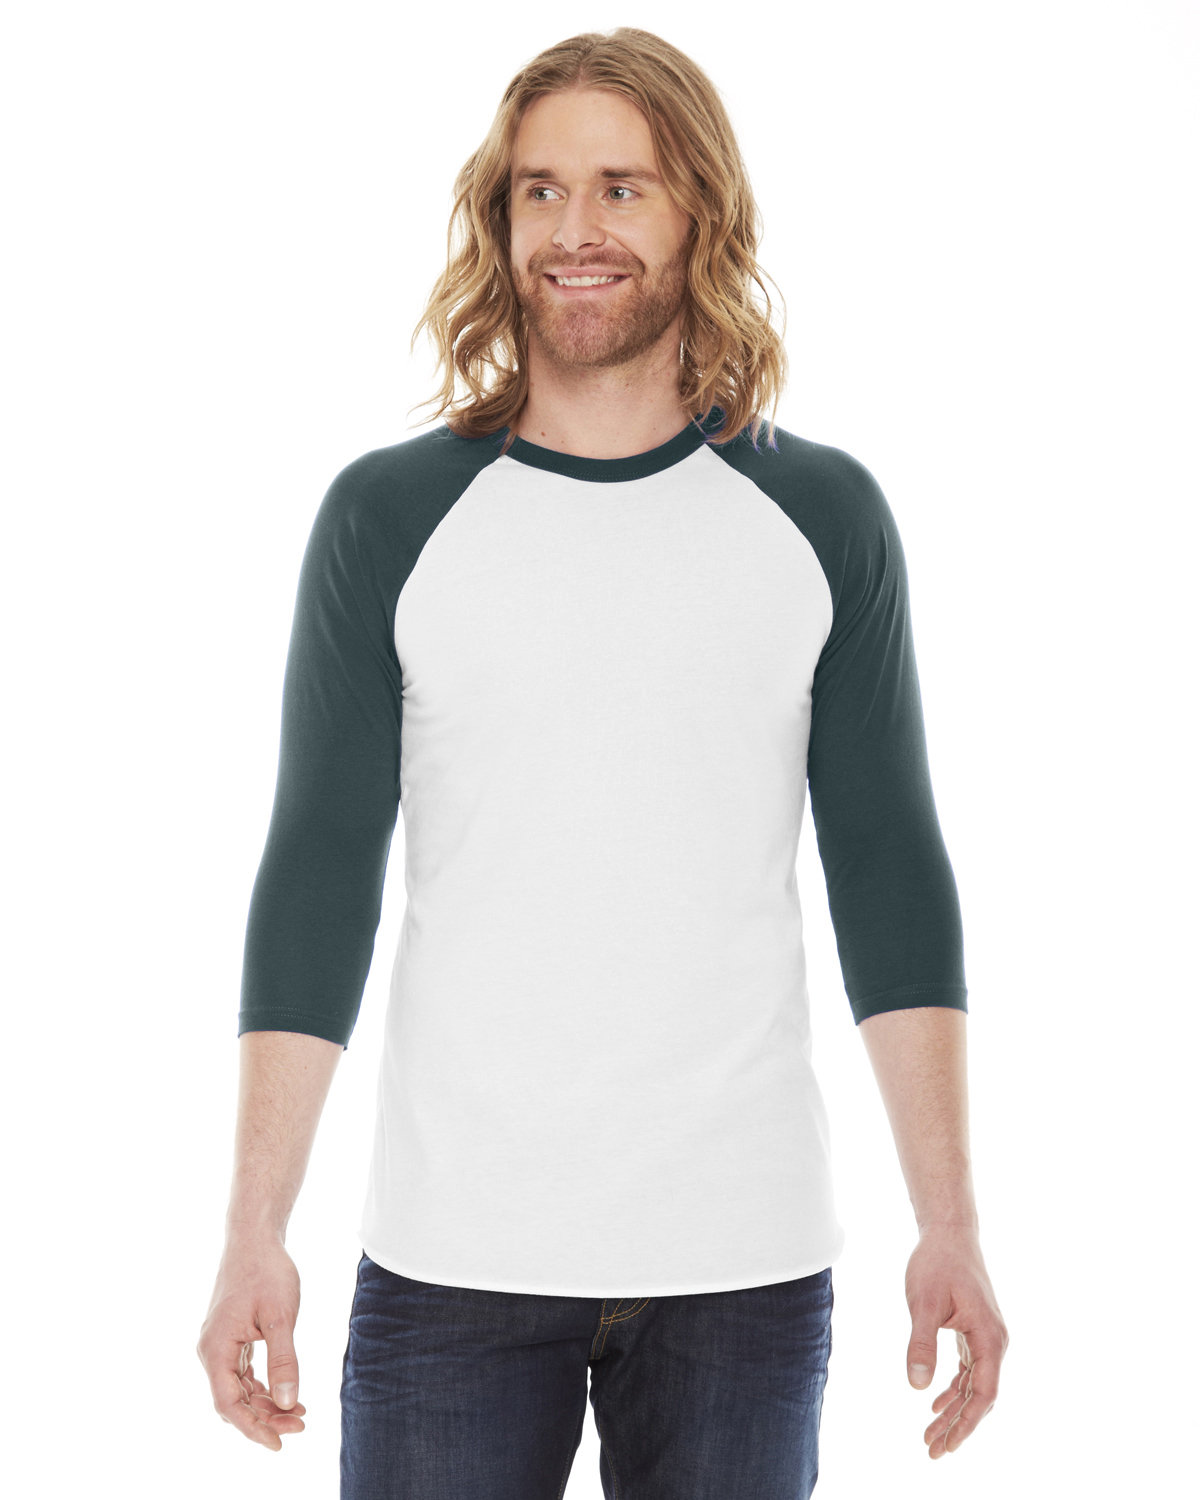 American Apparel Unisex Poly-Cotton 3/4-Sleeve Raglan T-Shirt WHITE/ FOREST